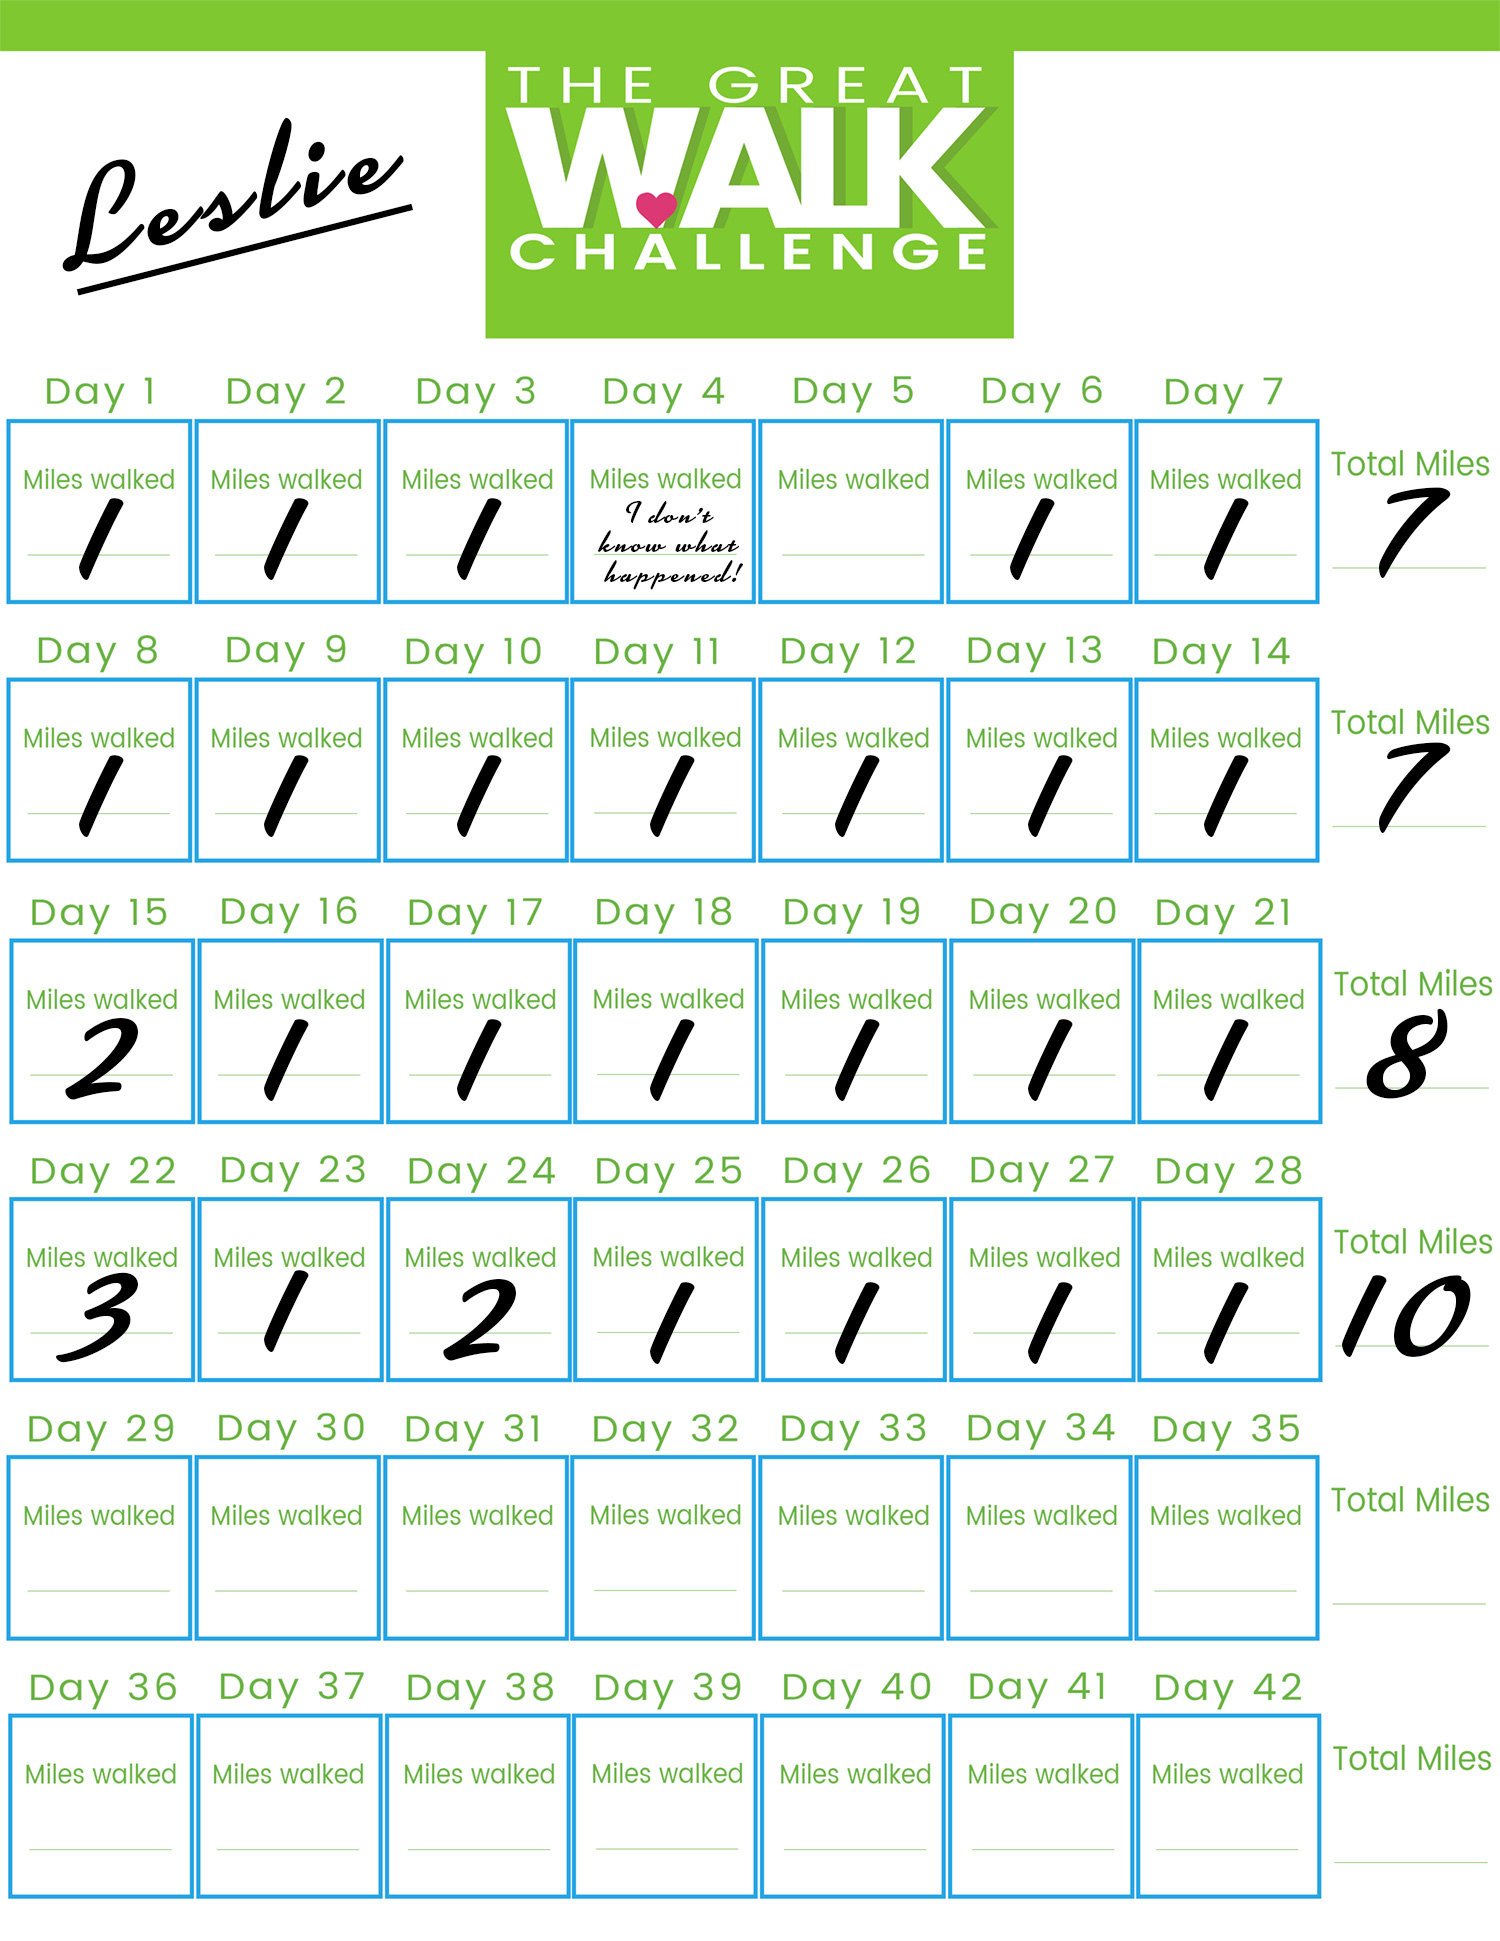 Sample Calendar - The Great Walk Challenge